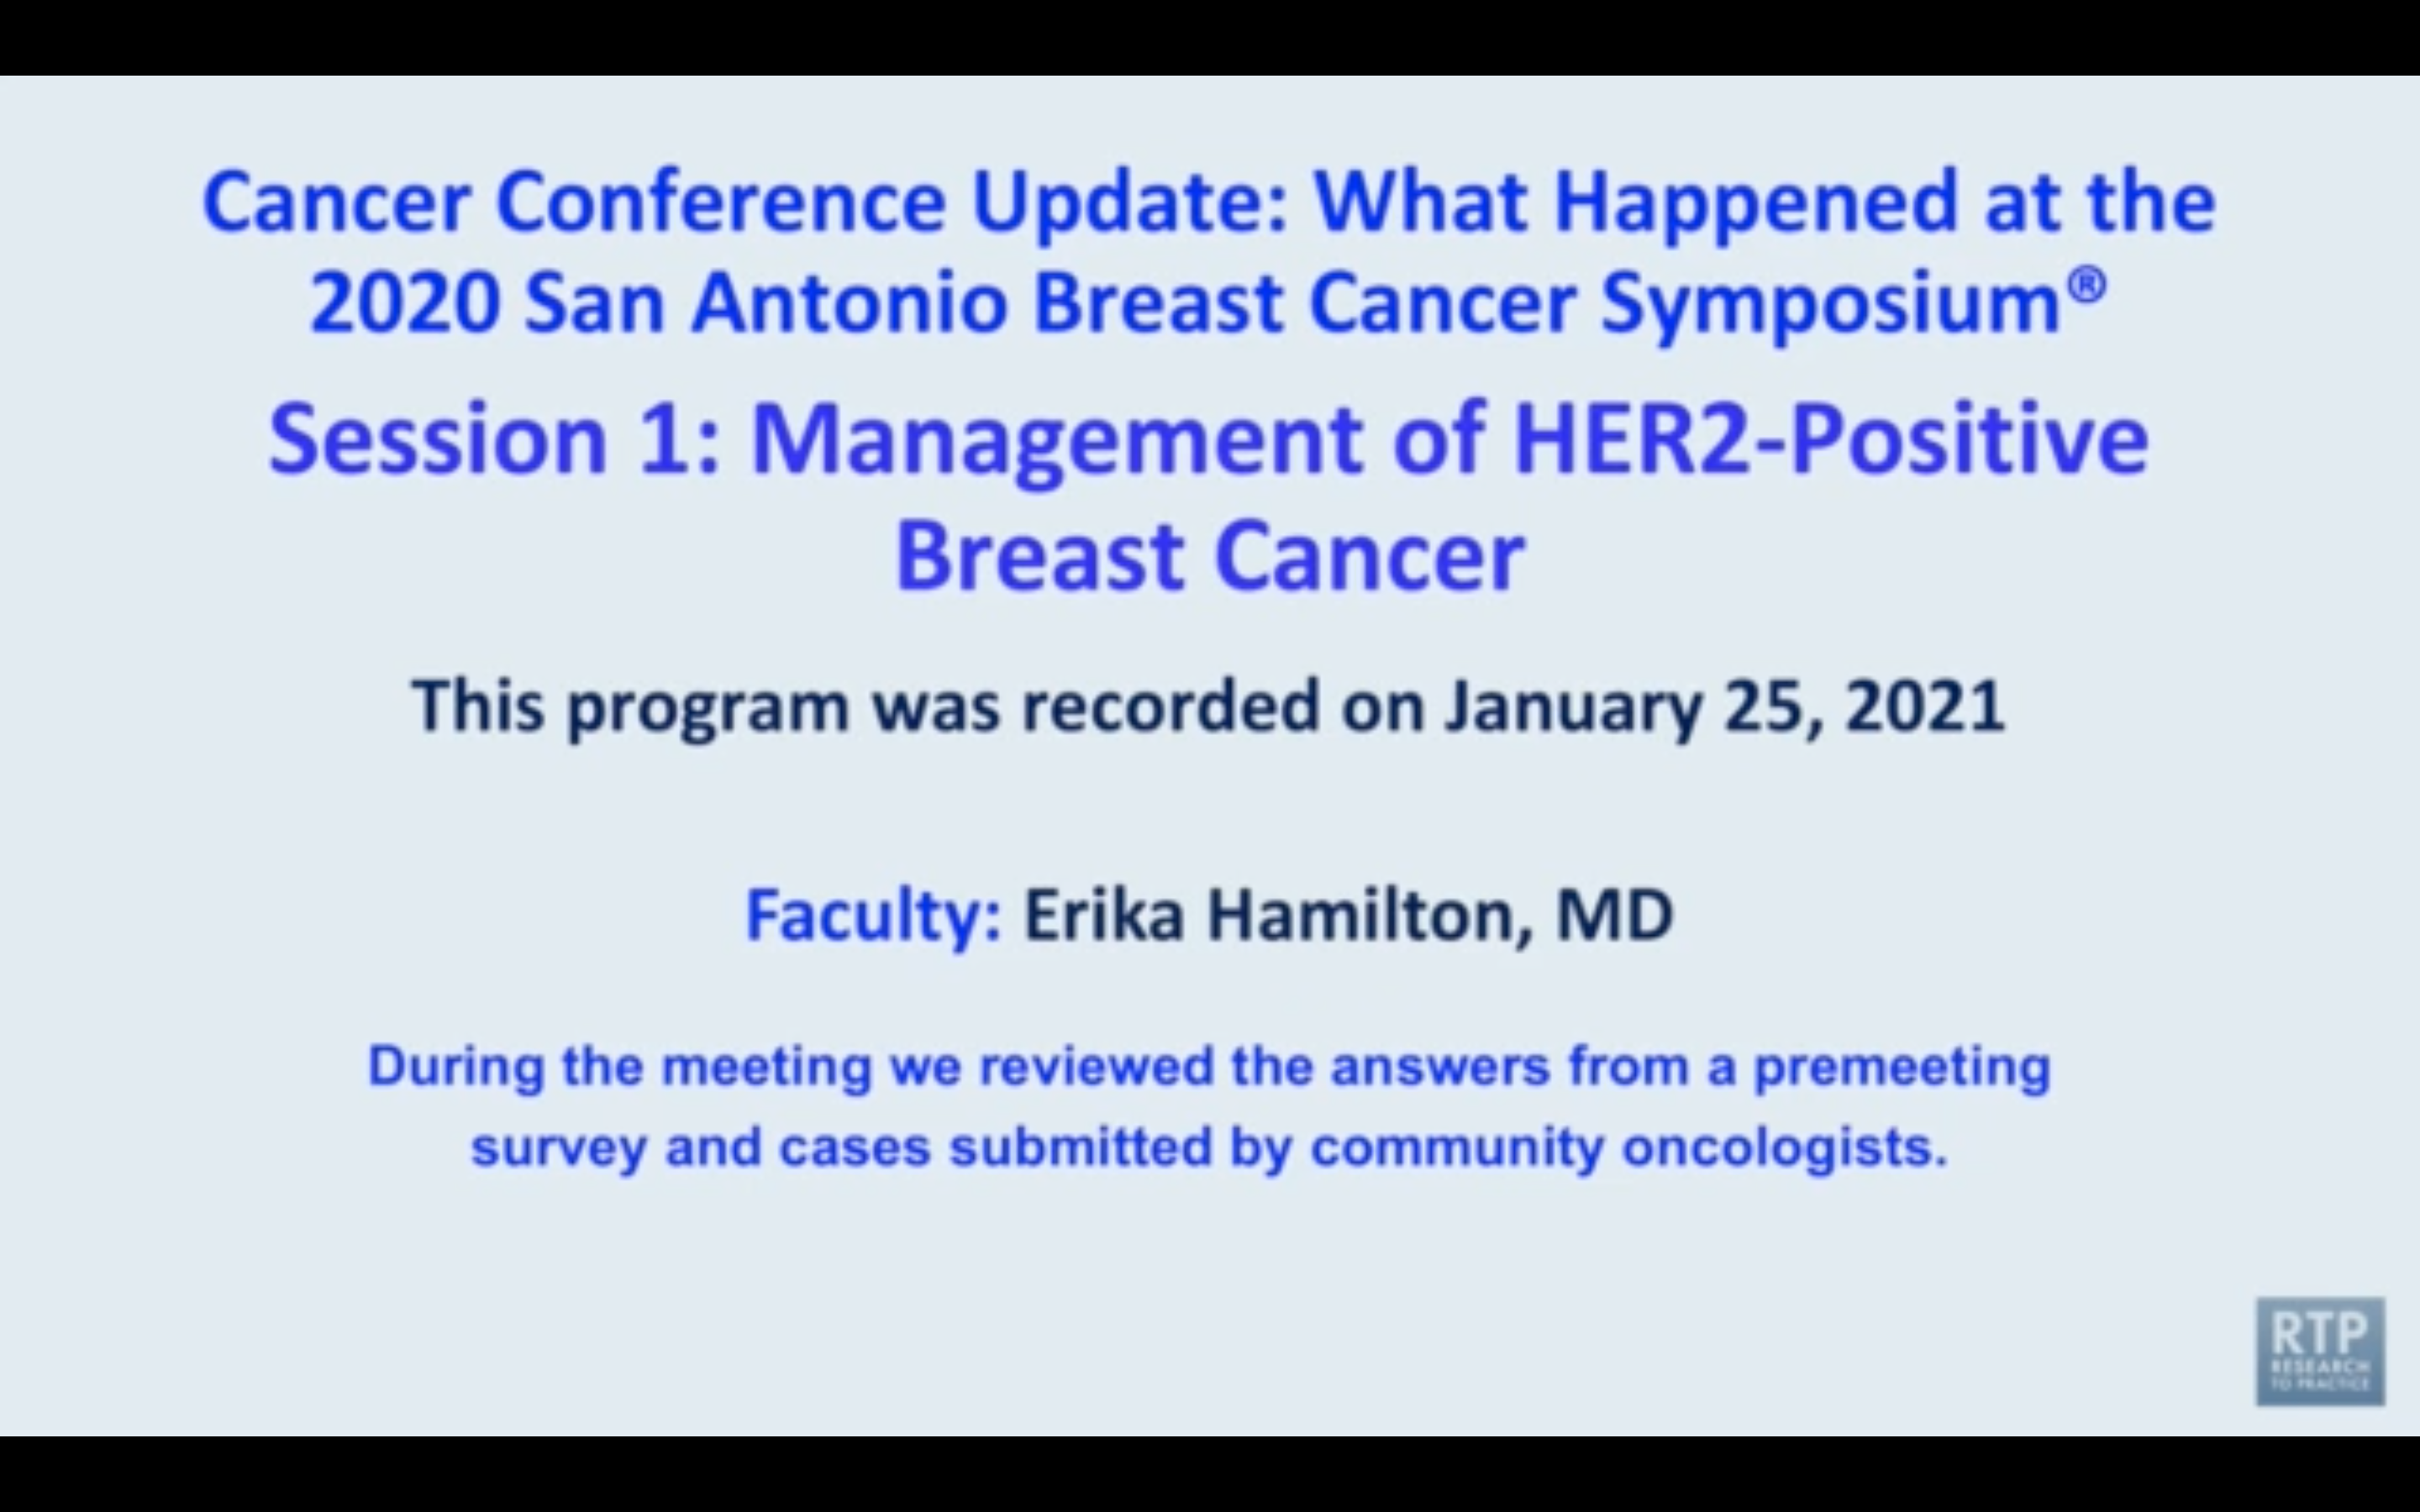 Artwork for HER2-Positive Breast Cancer | Cancer Conference Update: What Happened at the 2020 San Antonio Breast Cancer Symposium® — HER2-Positive Breast Cancer (Session 1)